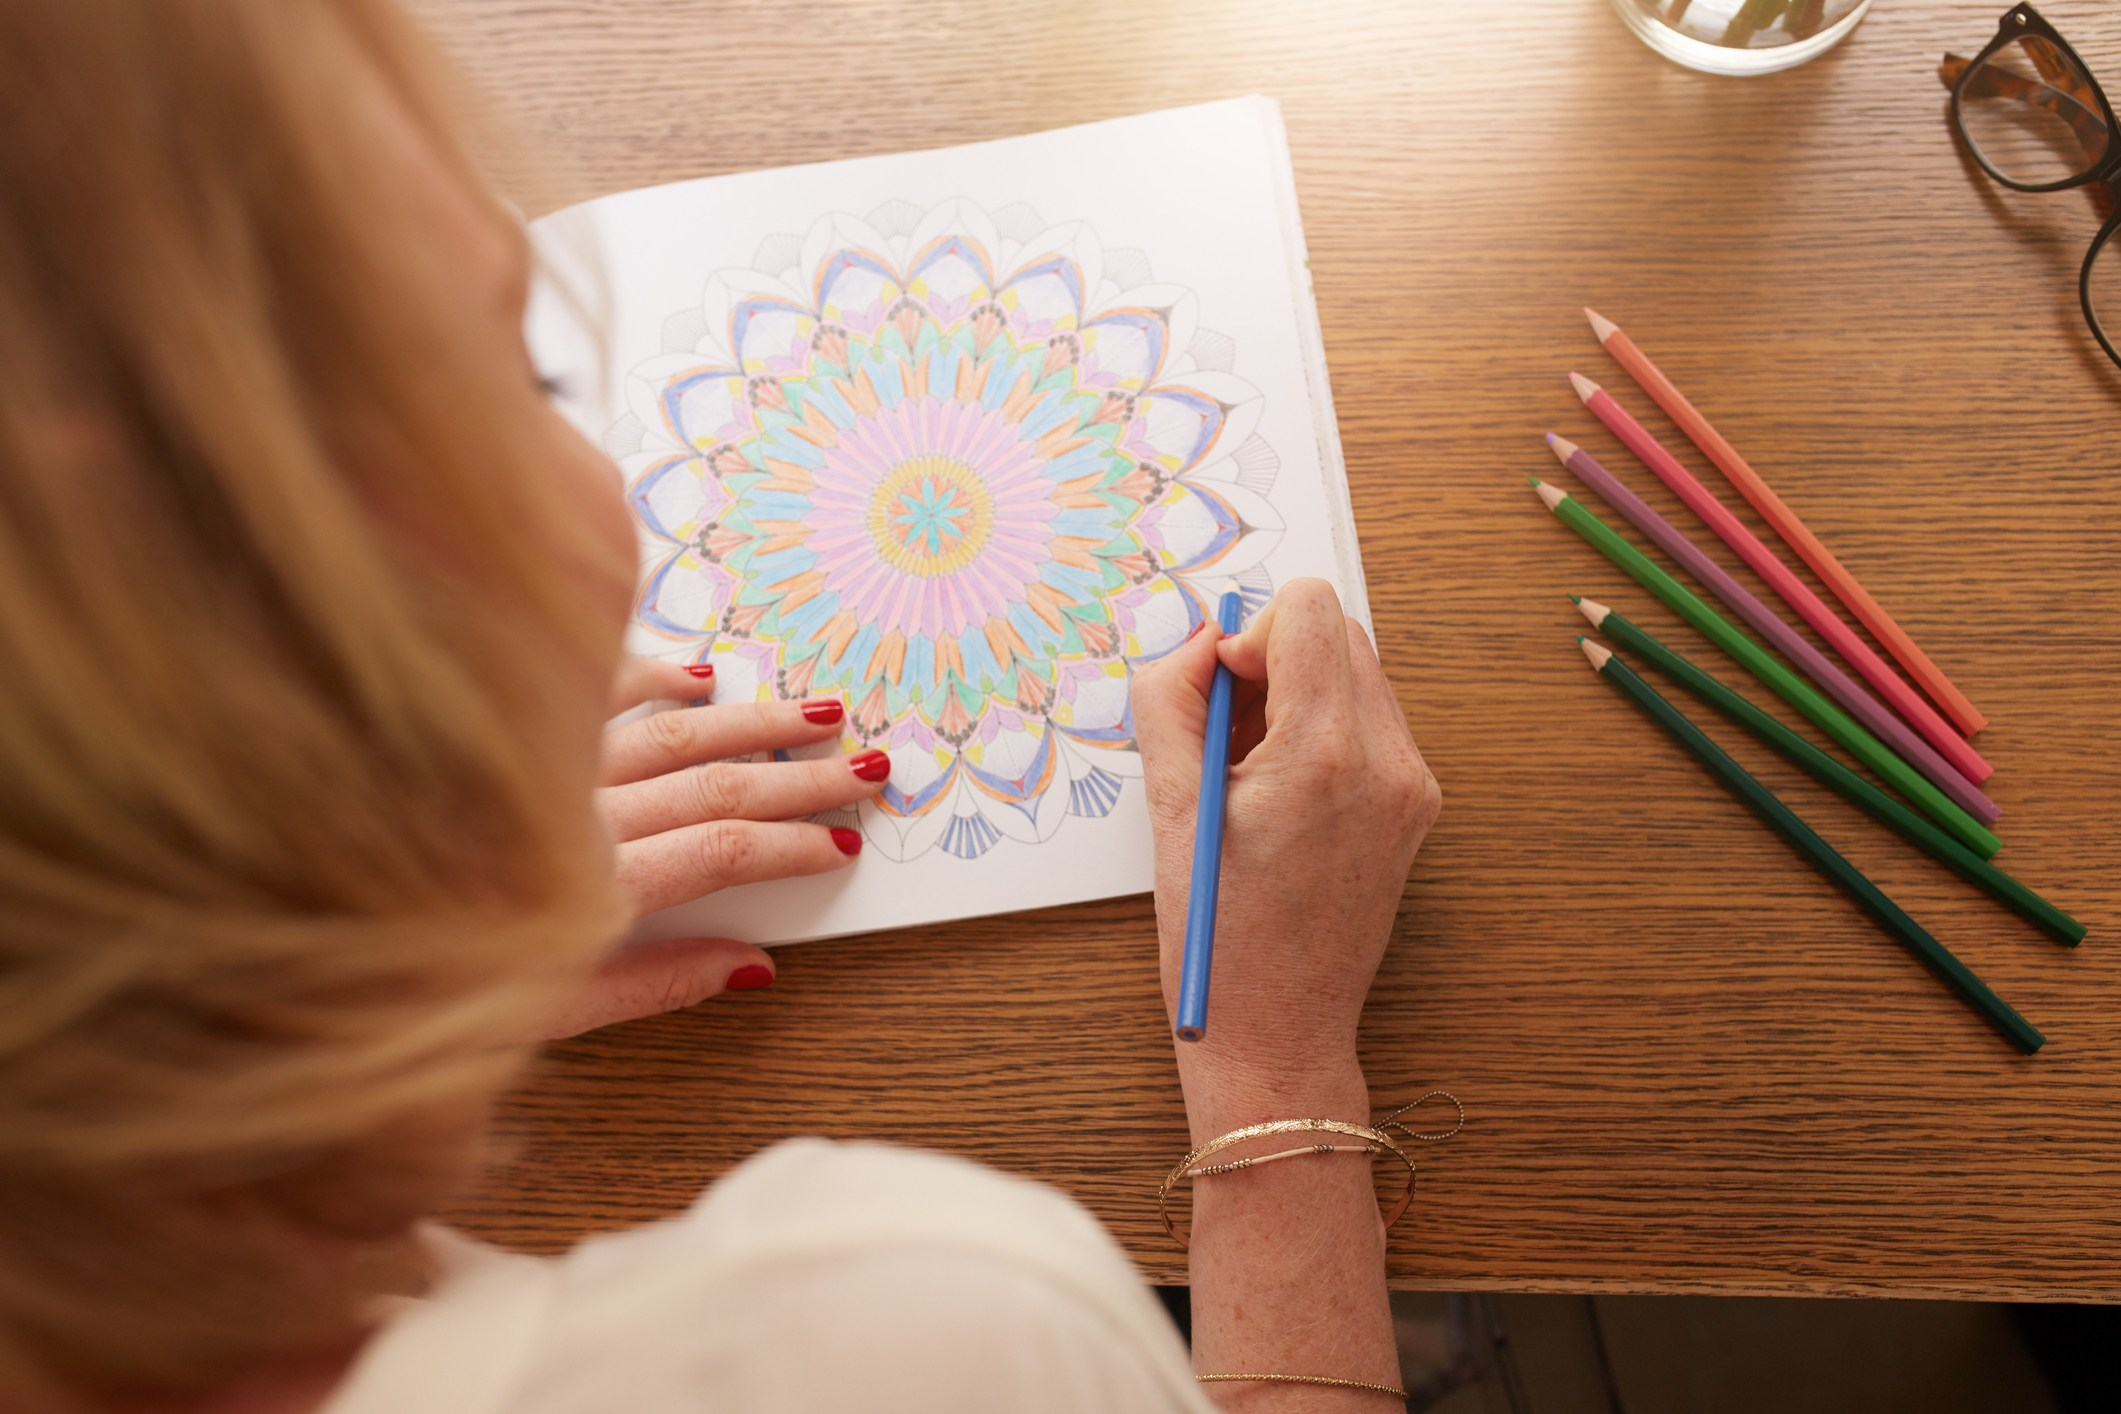 Drawing in adult coloring book